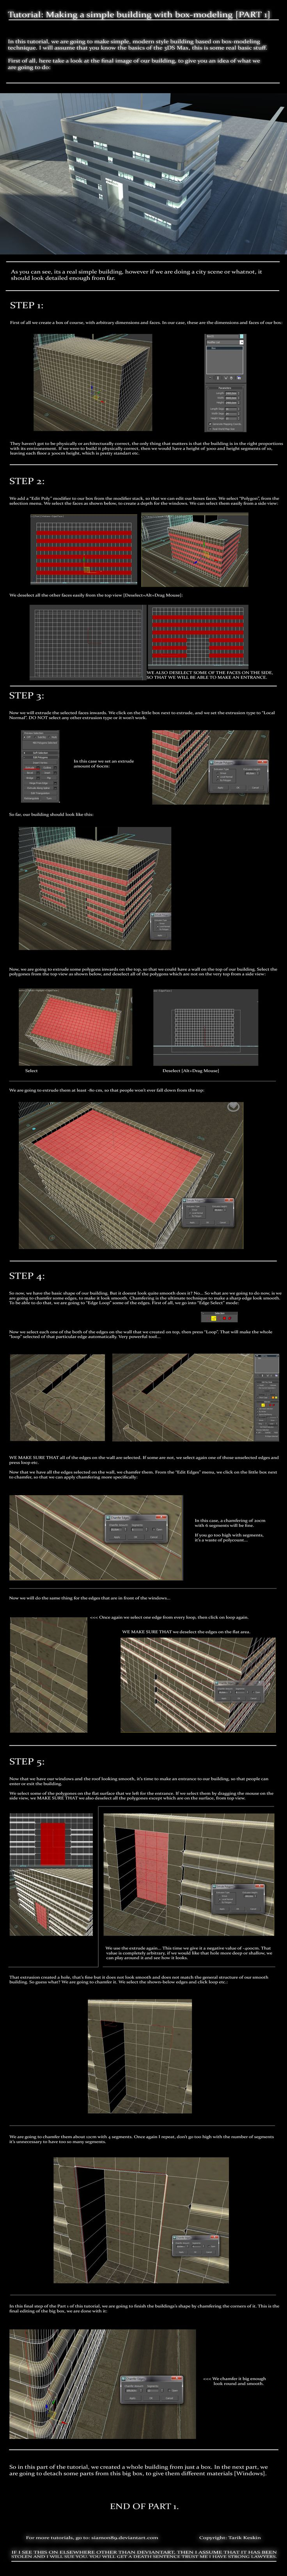 Box Modeling A Building Pt.1 by =Siamon89 on deviantART